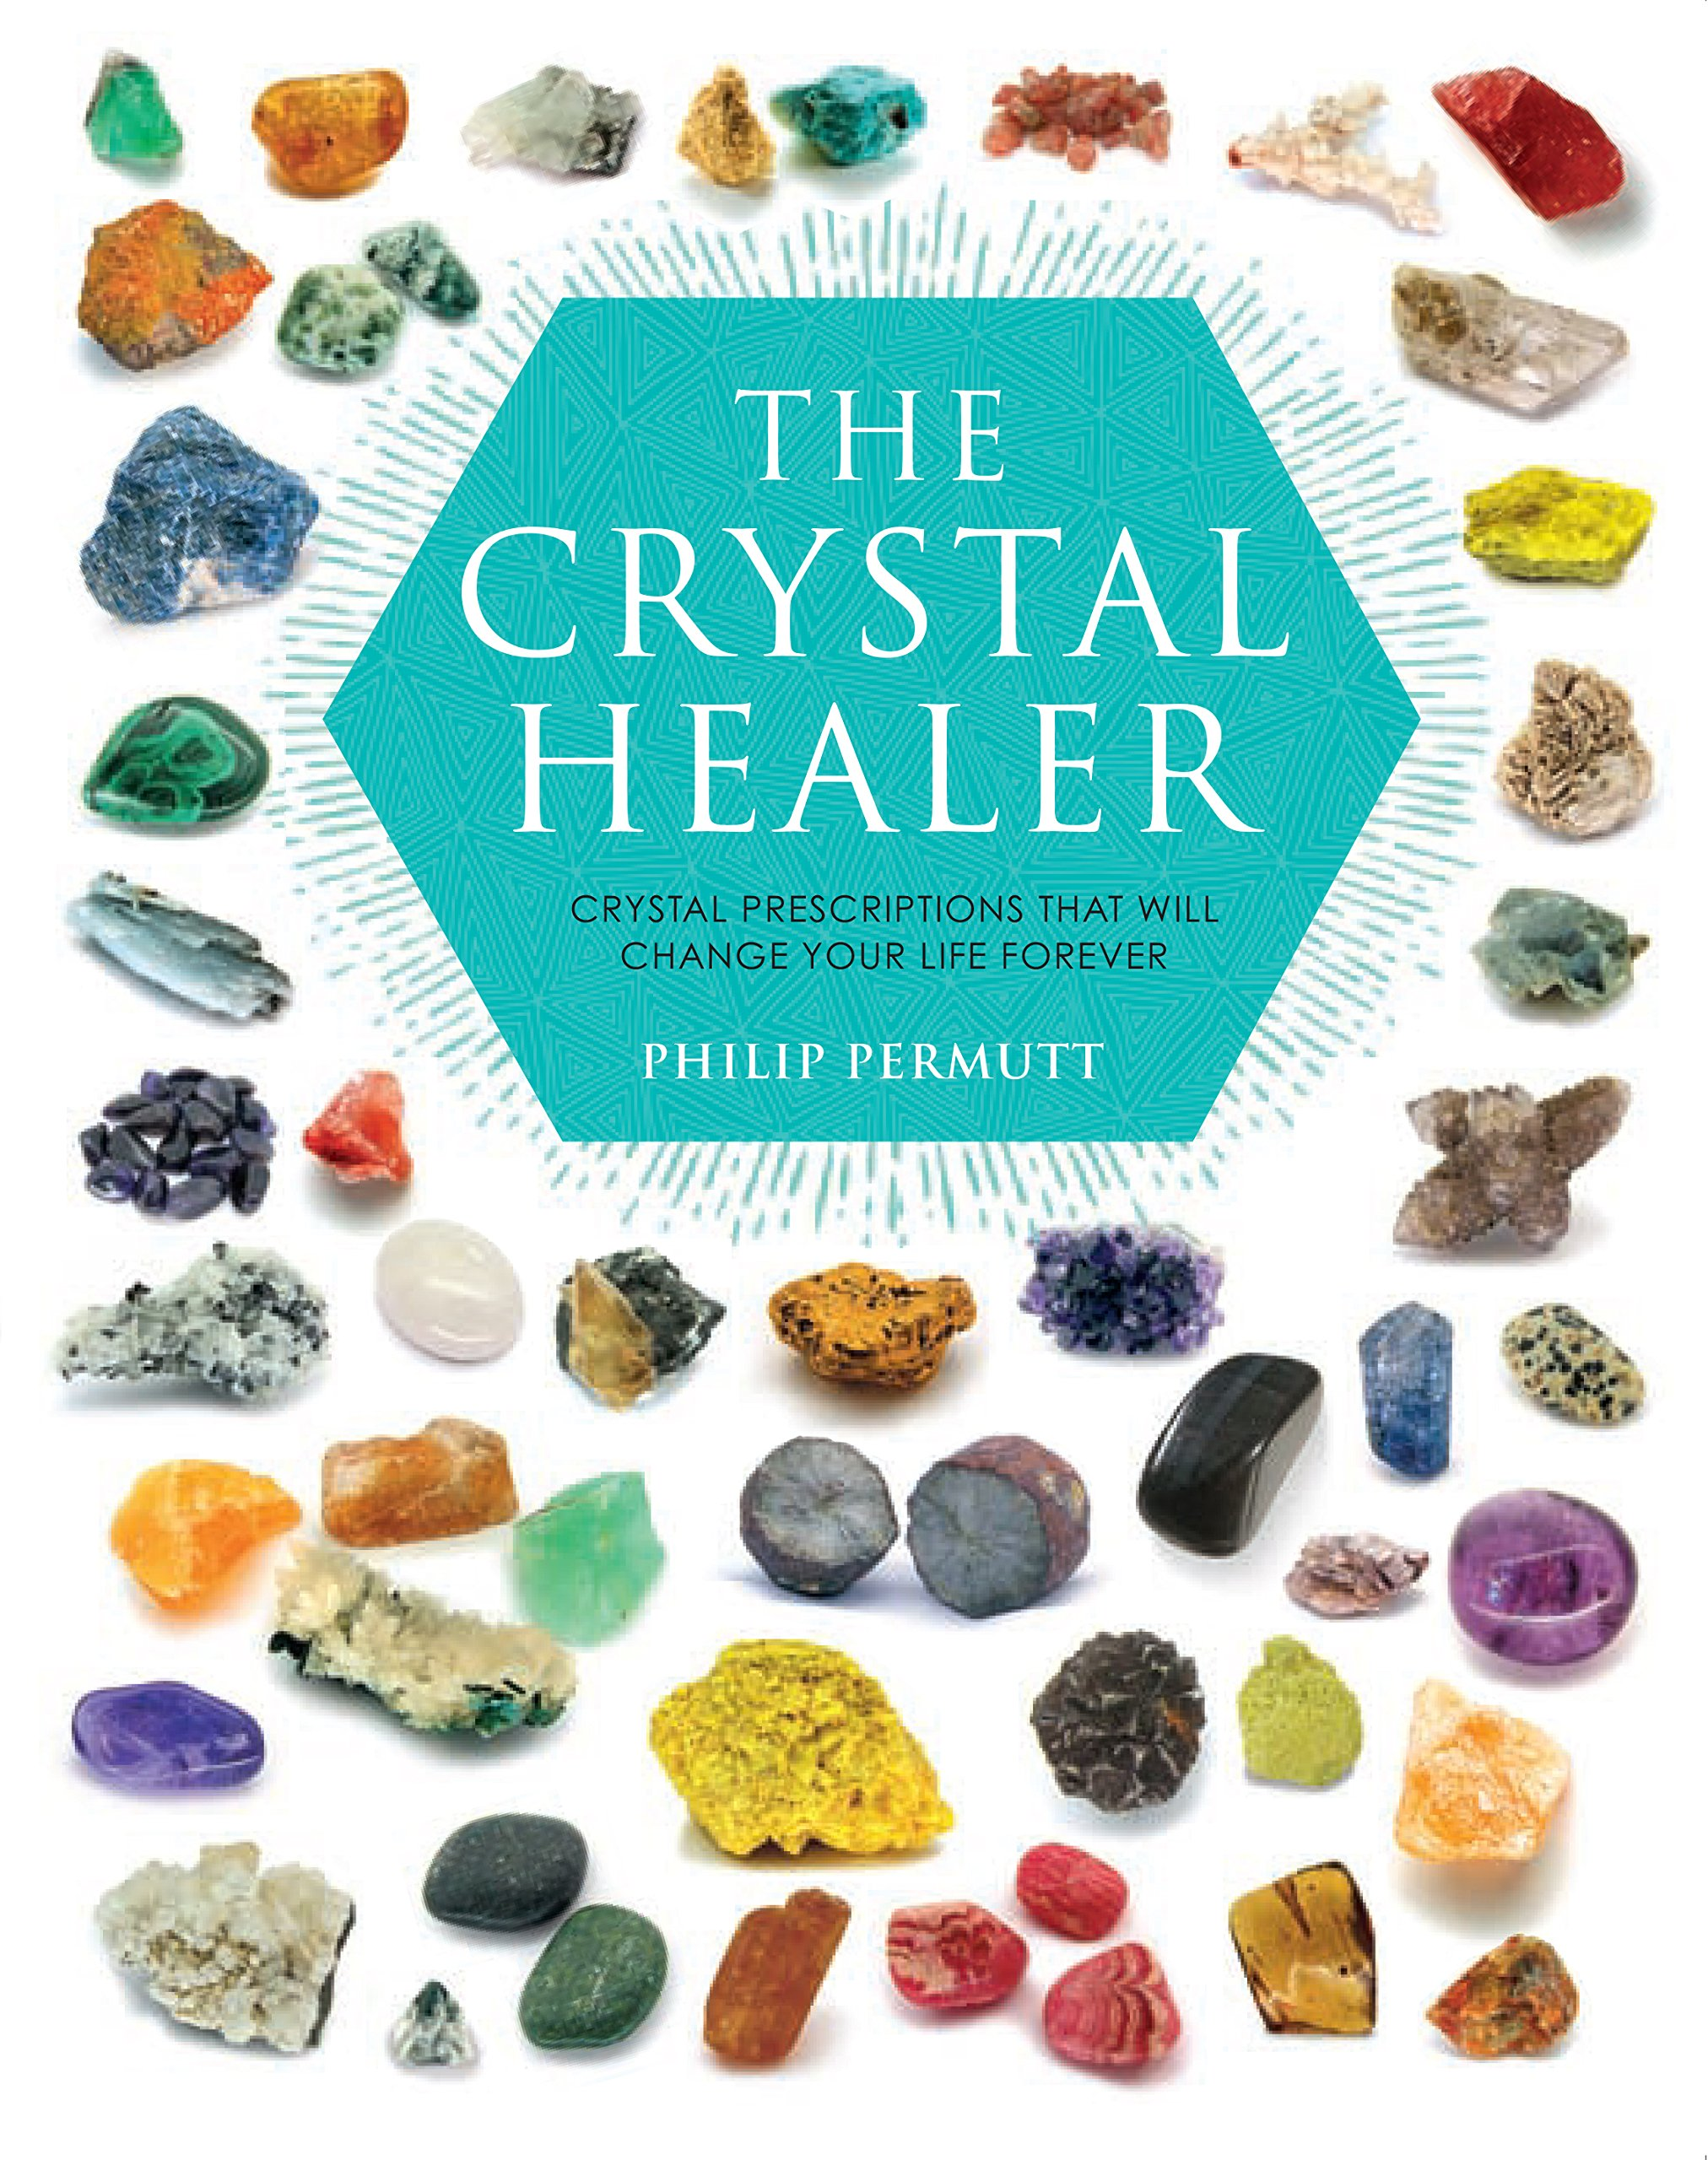 The Crystal Healer: Crystal prescriptions that will change your life